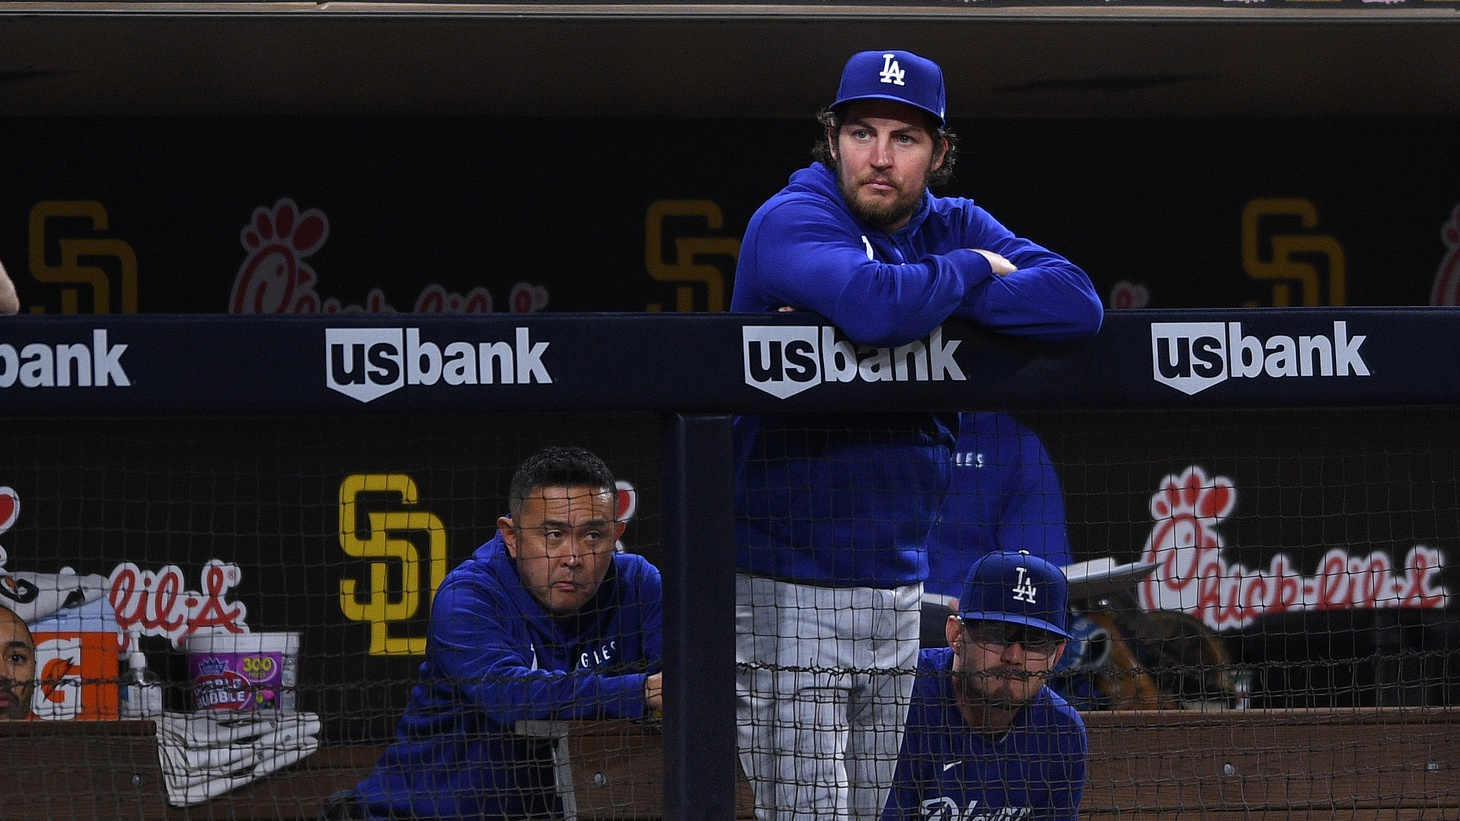 Los Angeles Dodgers starting pitcher Trevor Bauer (top) looks on from the dugout during the fifth inning against the San Diego Padres at Petco Park, San Diego, California, Jun 22, 2021.